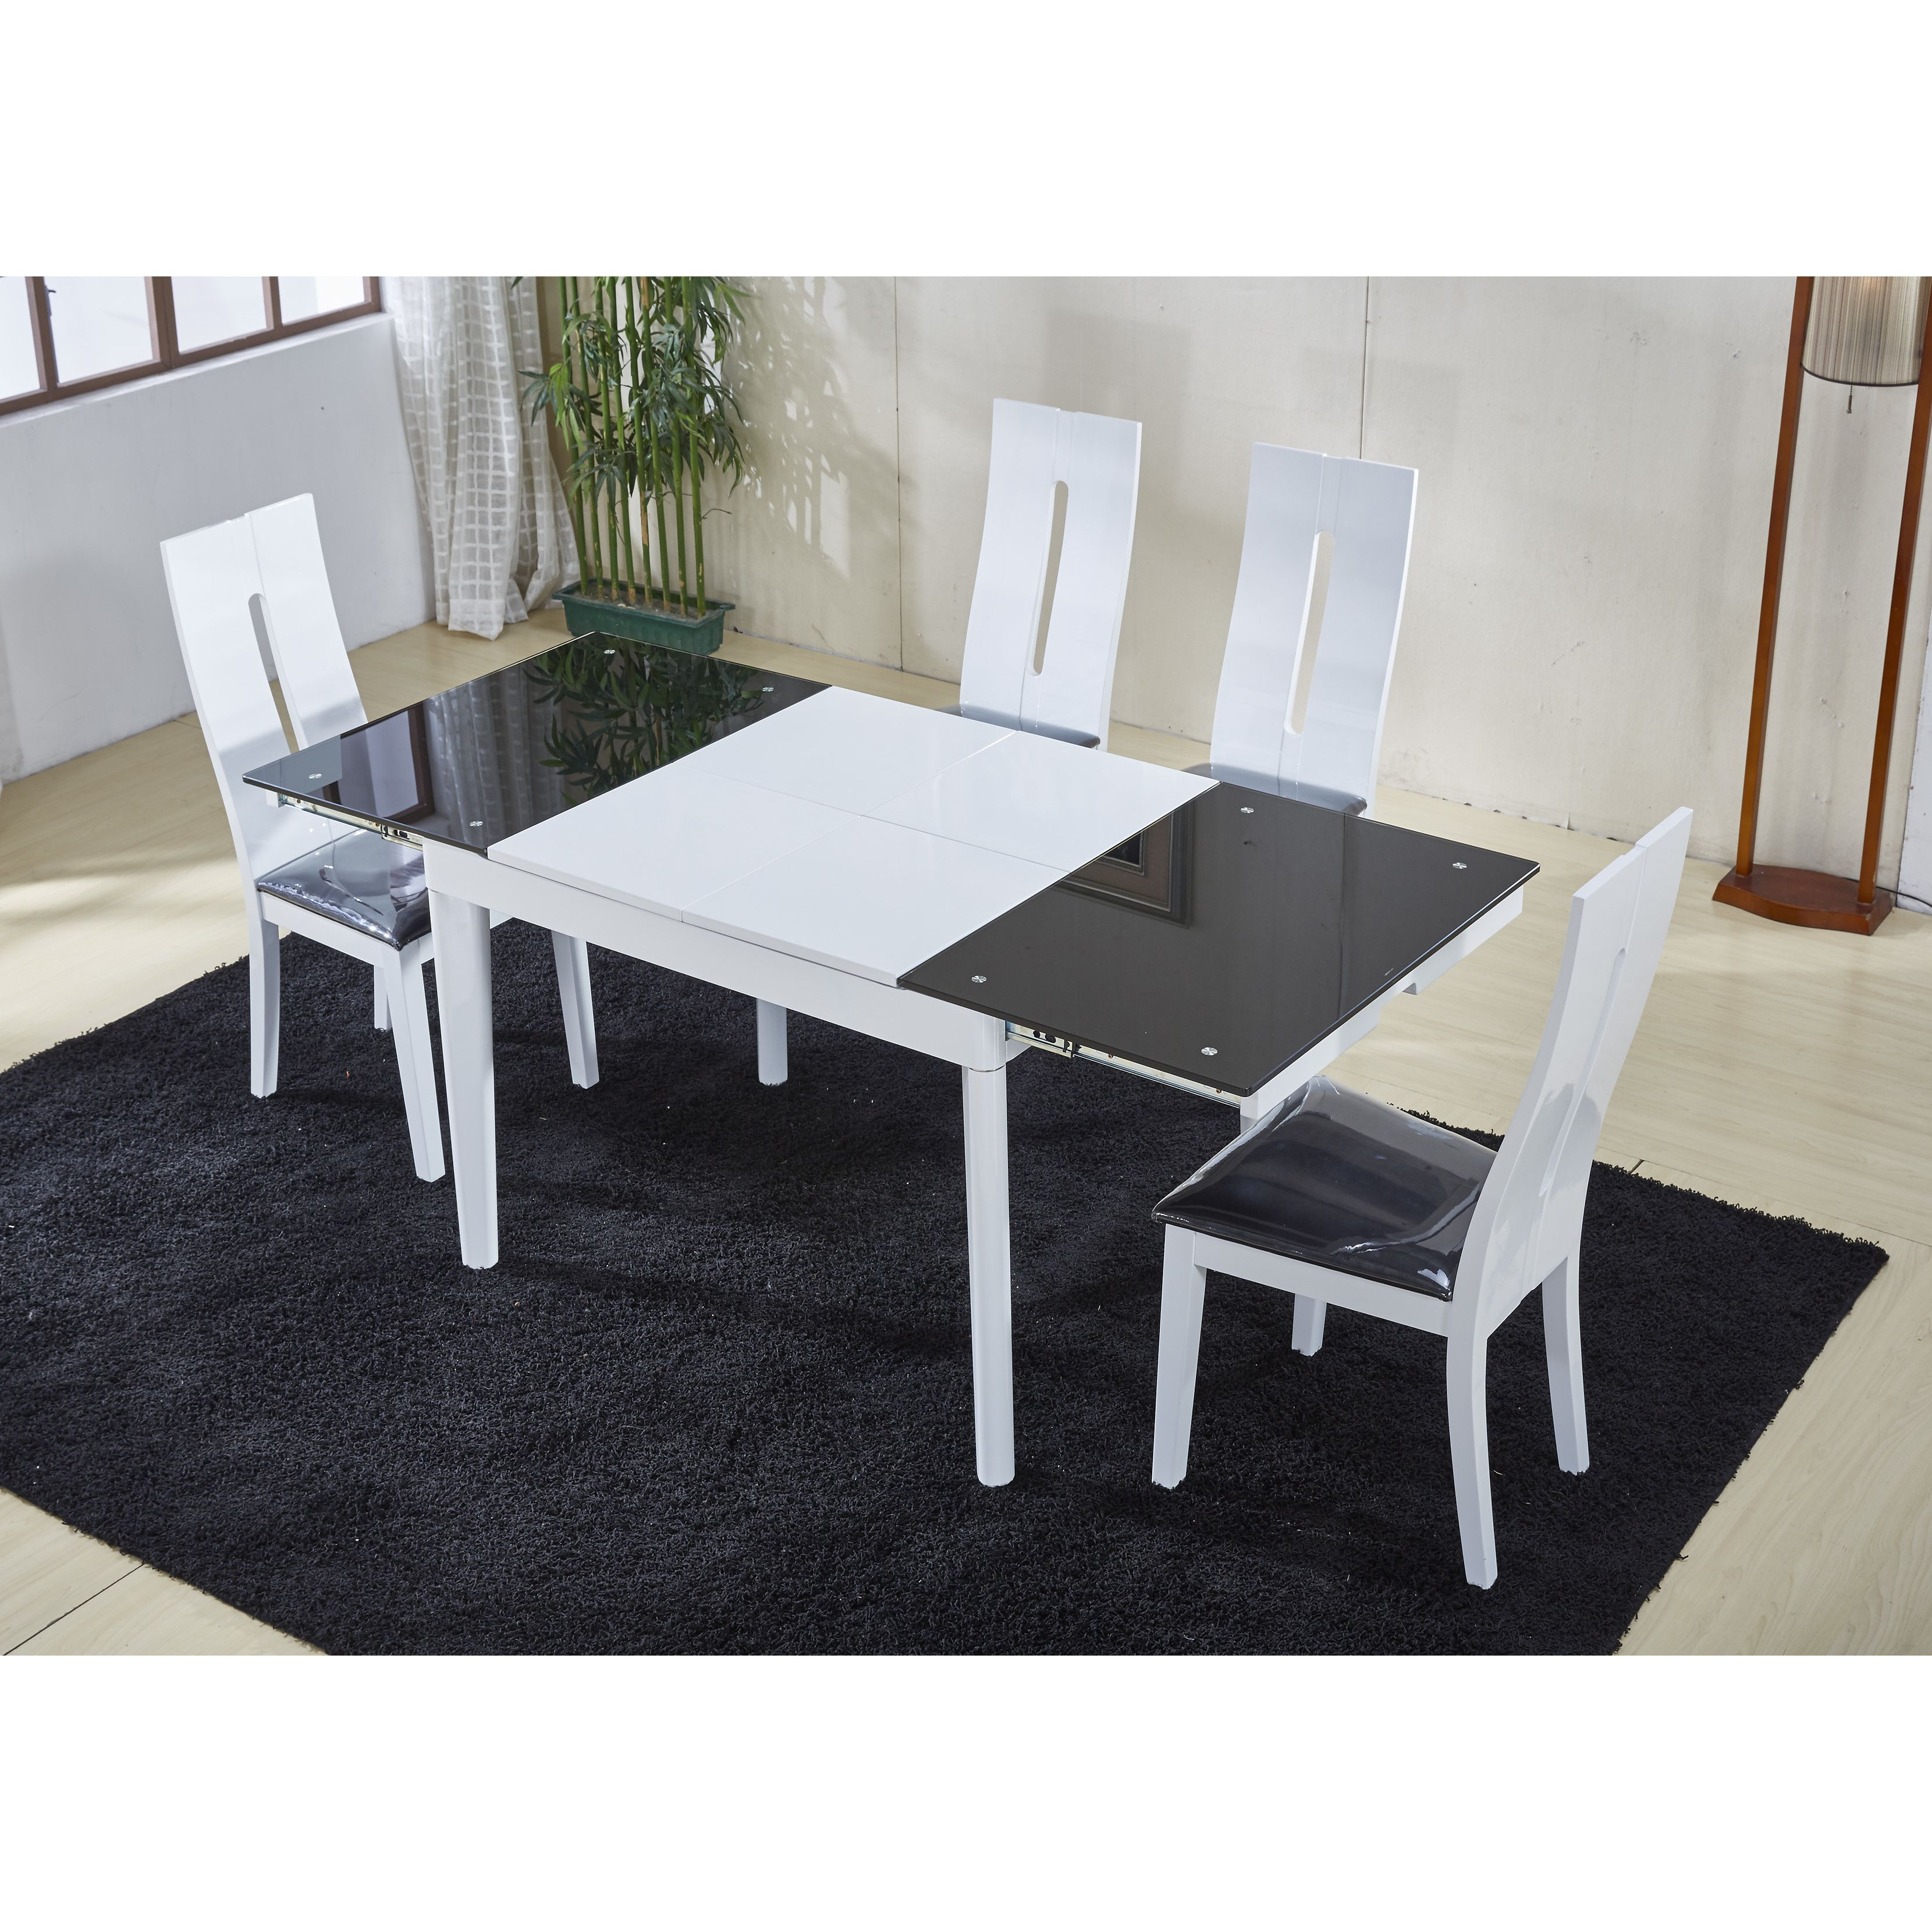 At Home USA Extendable Dining Table kitchen